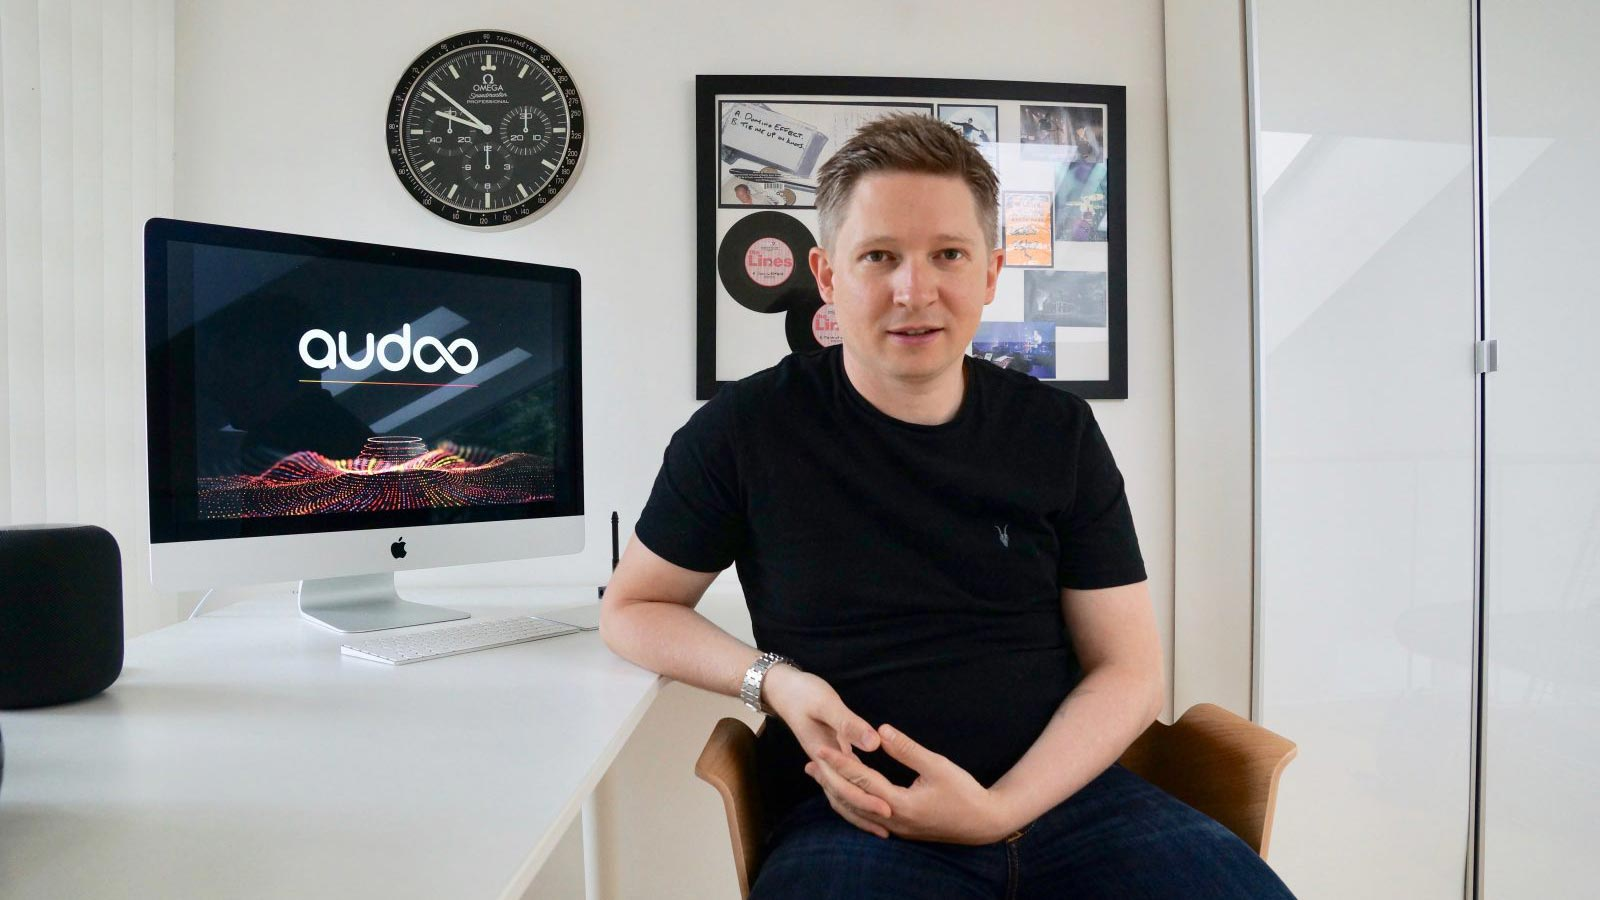 Meet the CEO: Ryan Edwards, CEO of Audoo